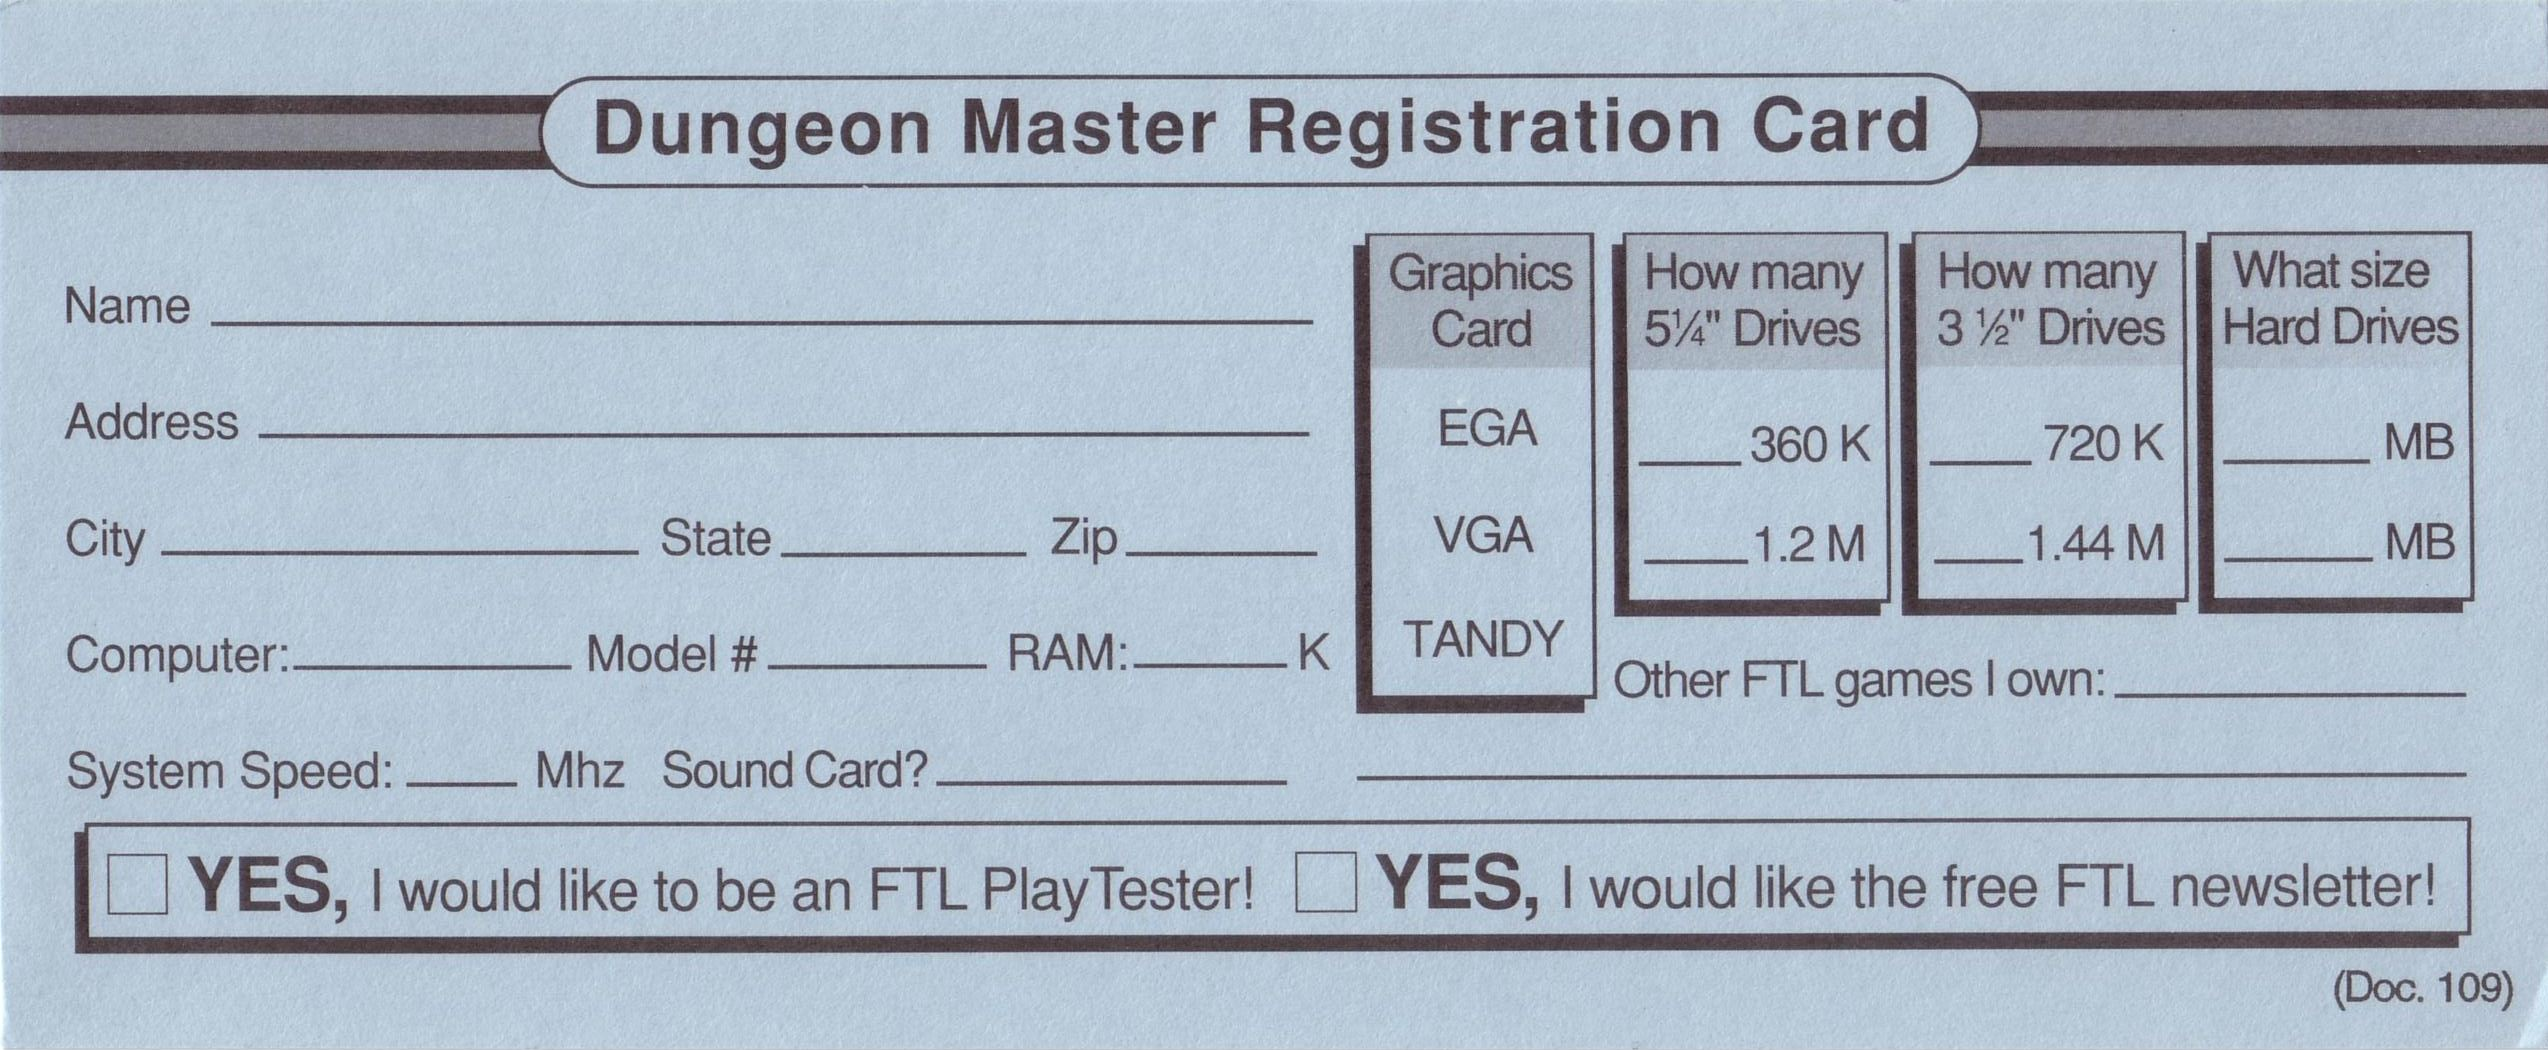 Dungeon Master for PC with FTL Sound Adapter (US Release) - Registration Card Back